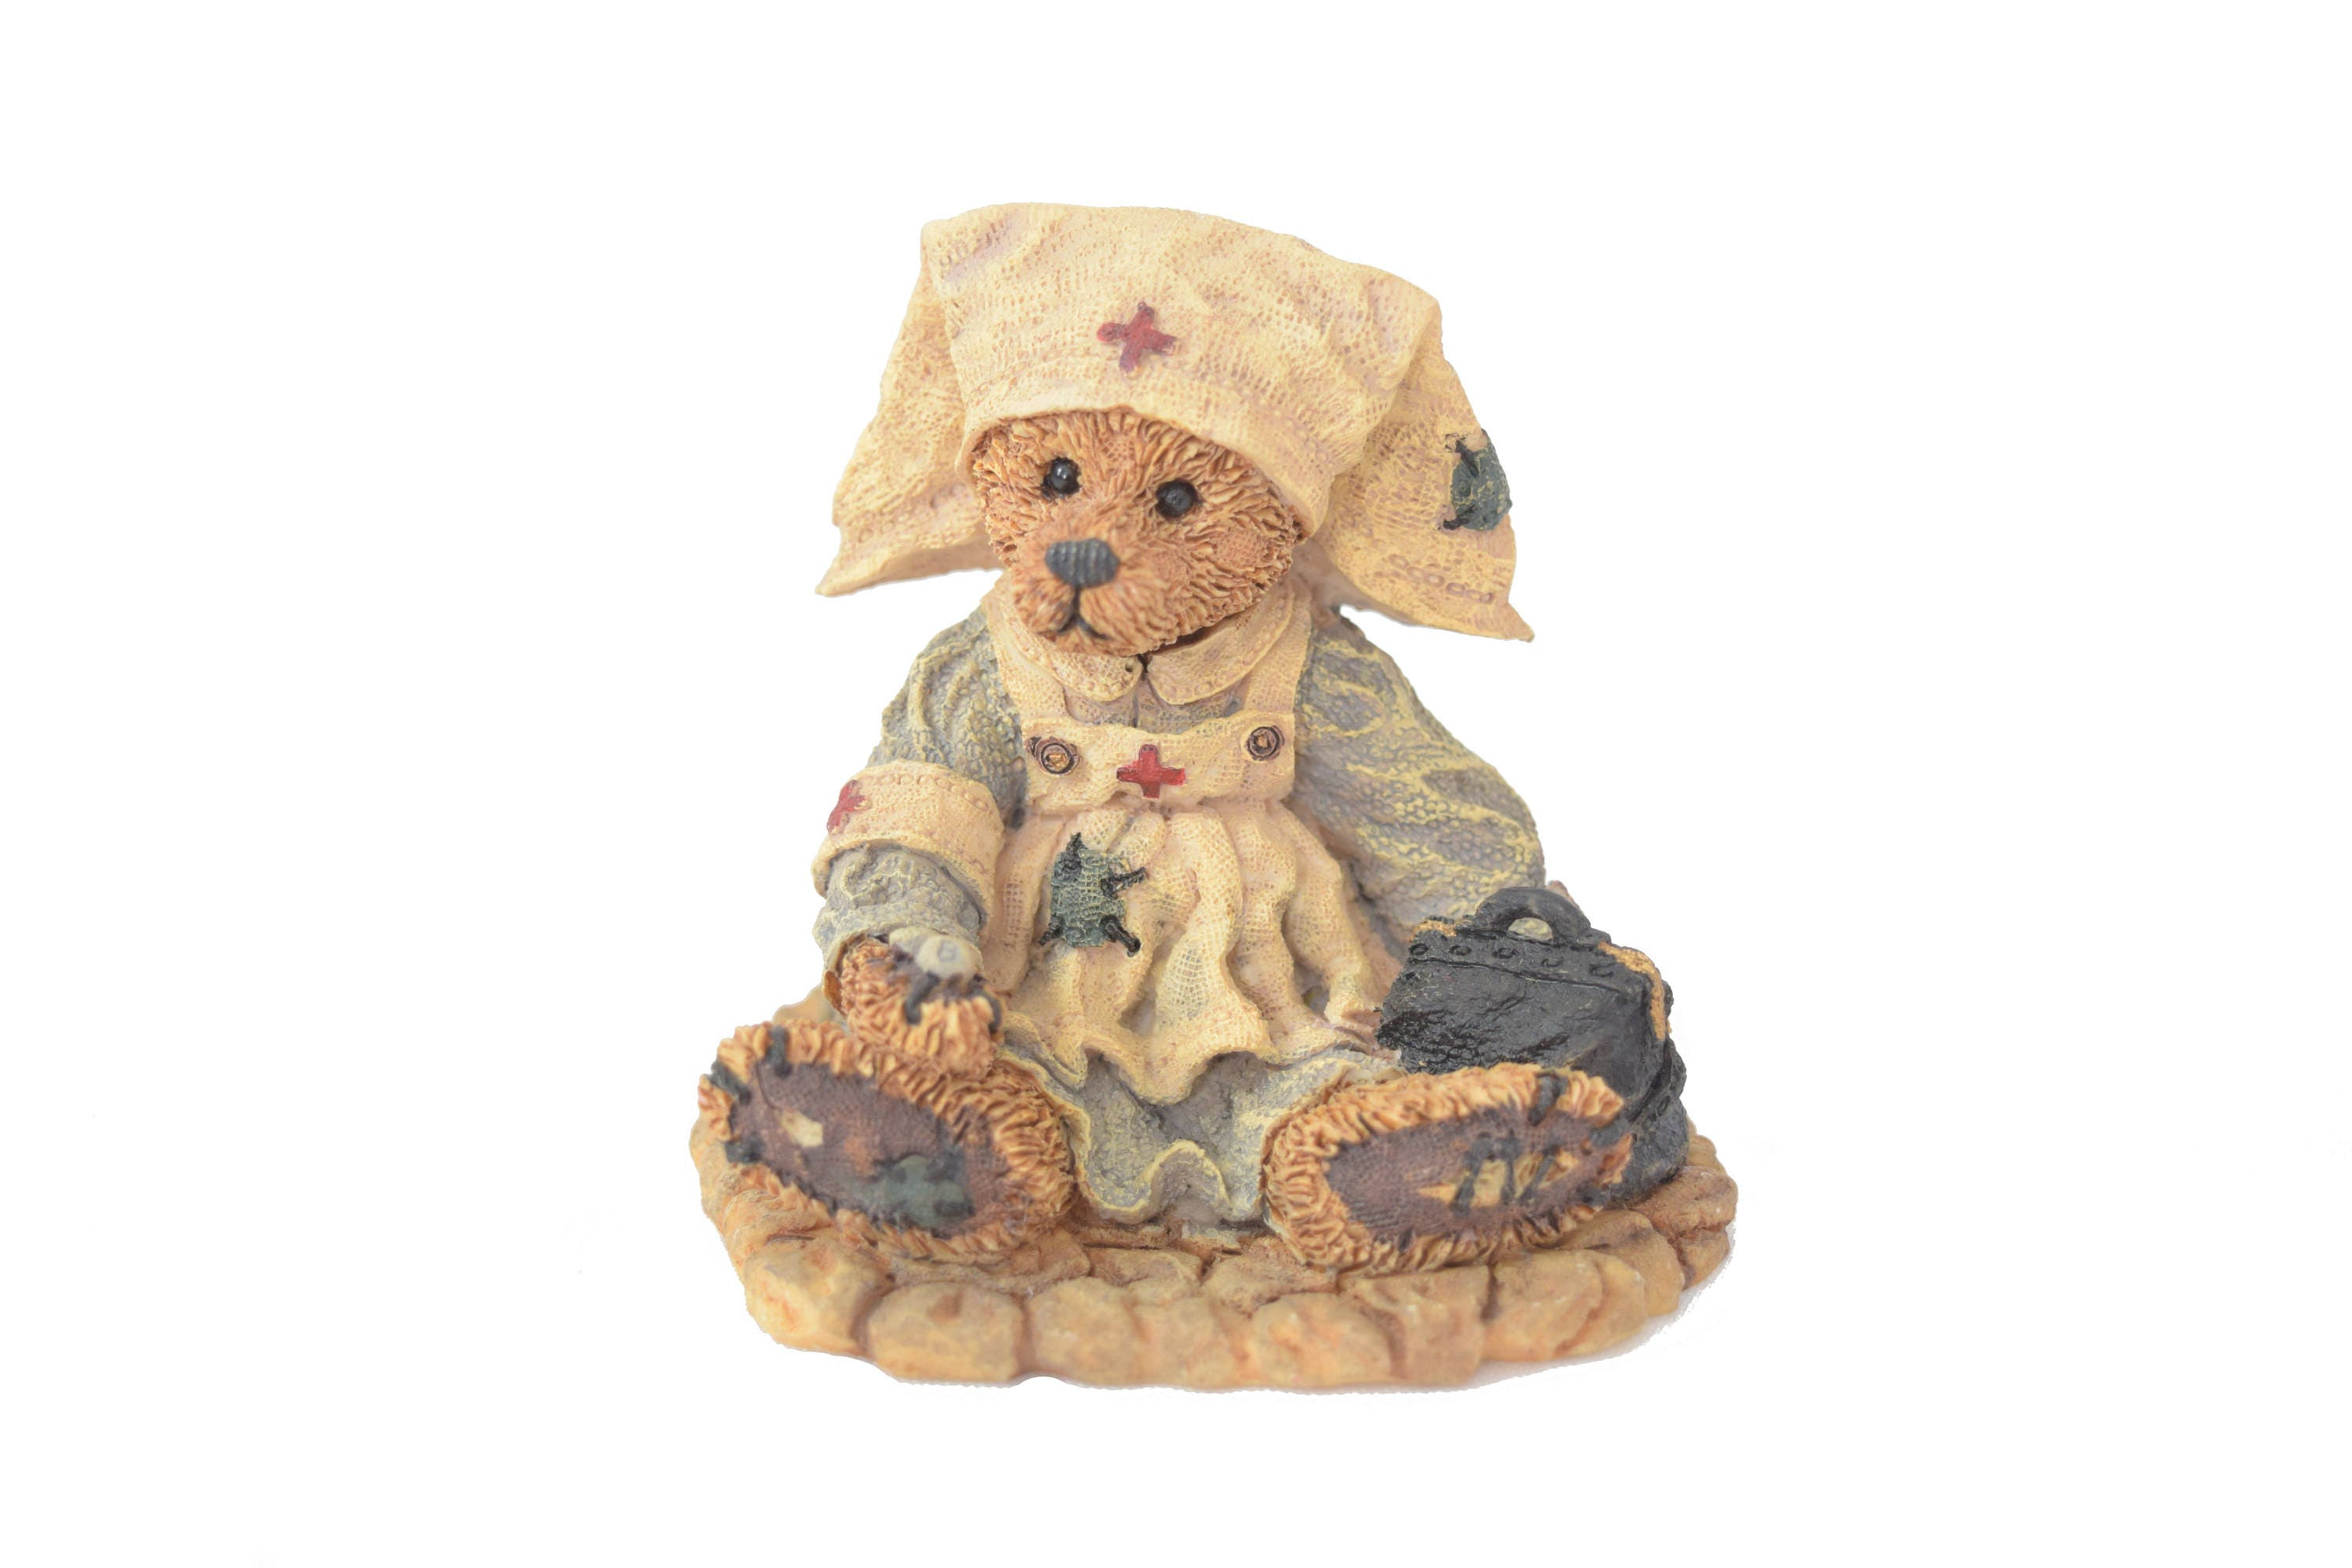 Nurse Resin Bear Figurine Collectible Teddy Figure